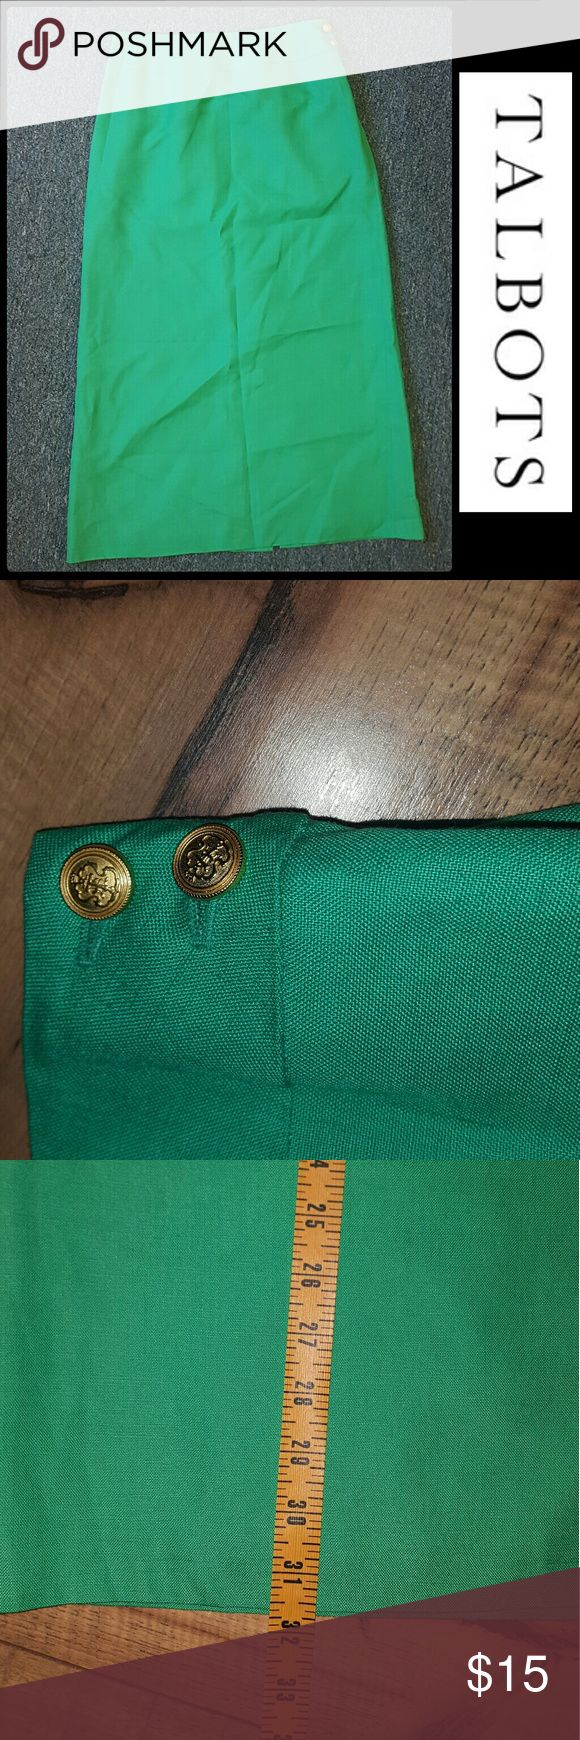 TALBOTS KELLY GREEN PENCIL SKIRT SZ 4P BEAUTIFUL MIDI PENCIL SKIRT. PLEASE FEEL FREE TO MAKE AN OFFER!!! Talbots Skirts Midi